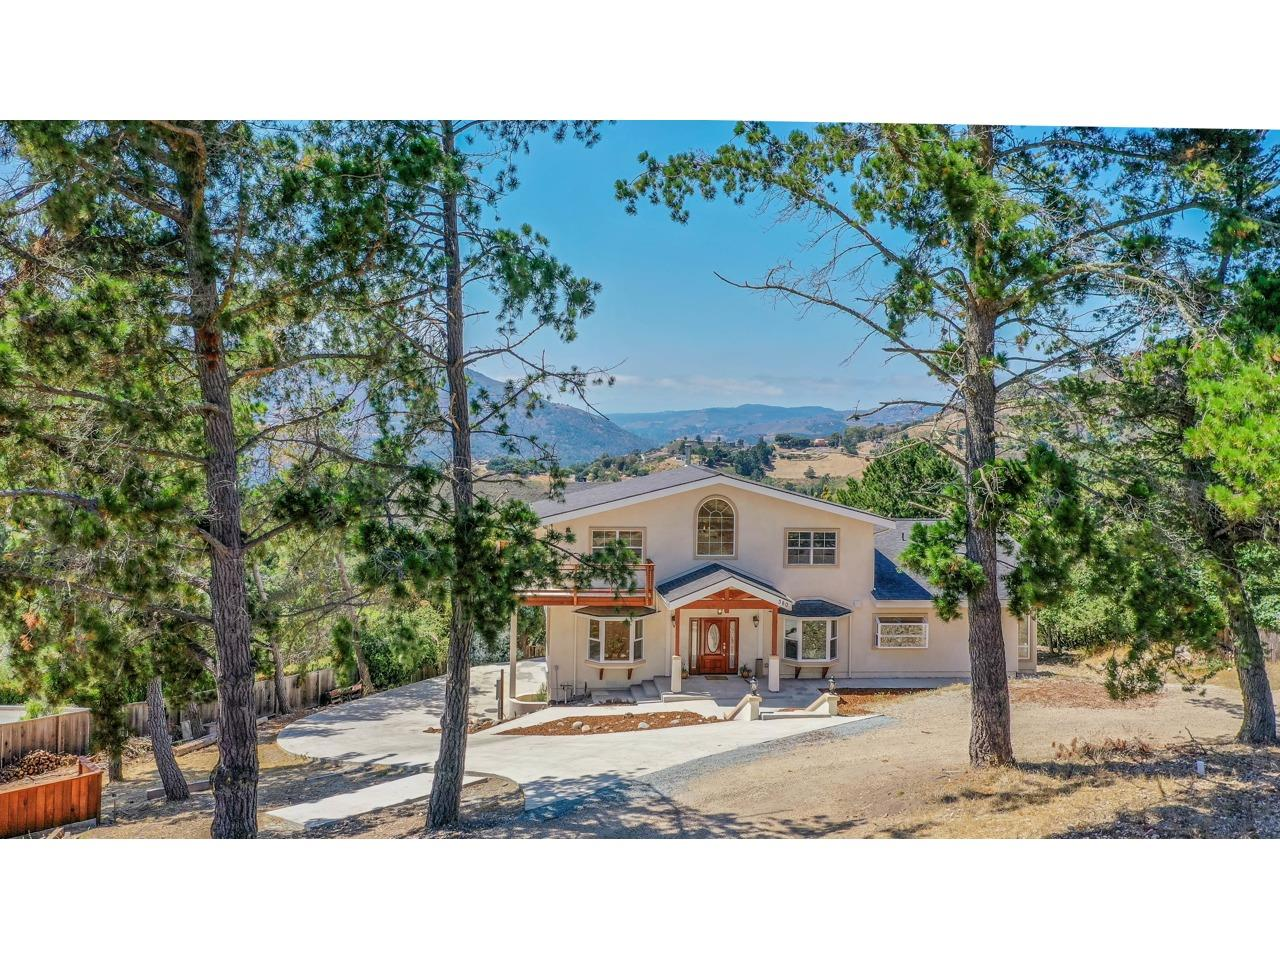 Photo of 380 El Caminito RD, CARMEL VALLEY, CA 93924